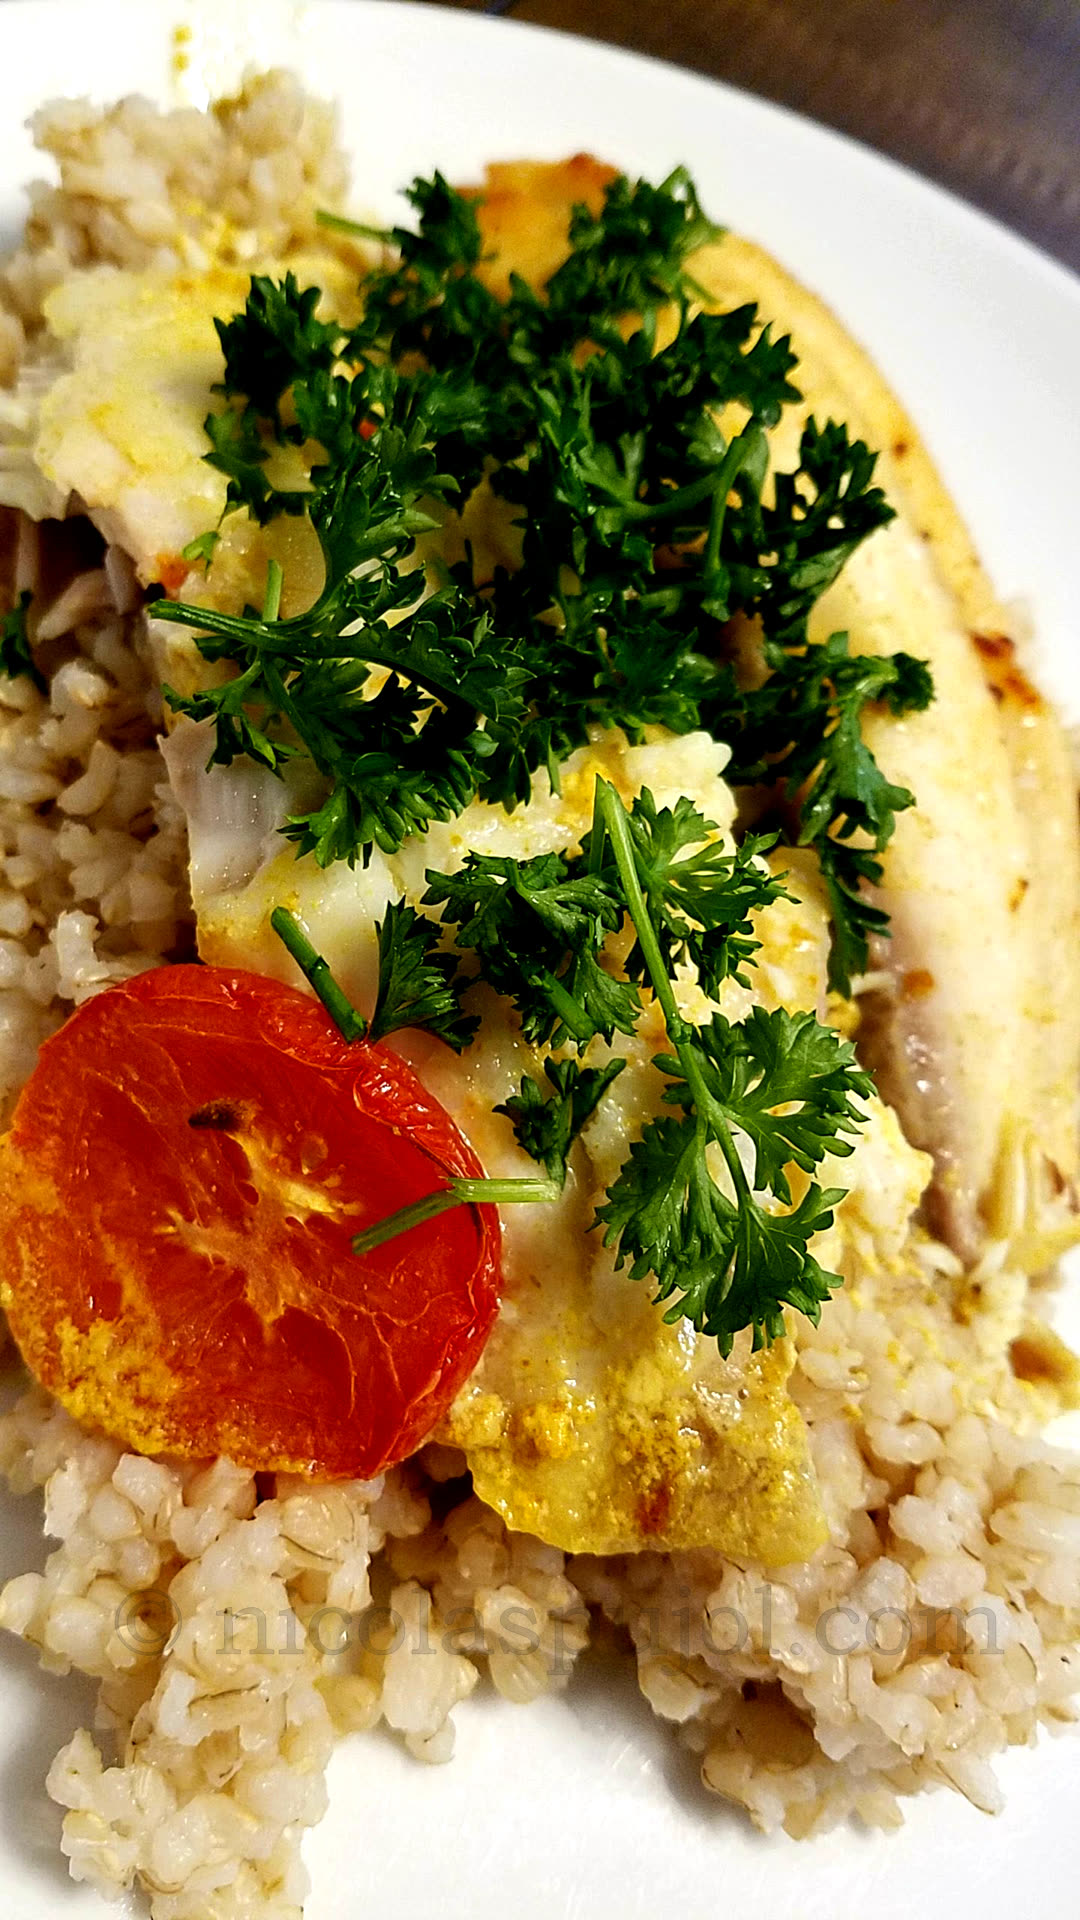 Presentation serving for baked tilapia with coconut milk, tomato and parsley